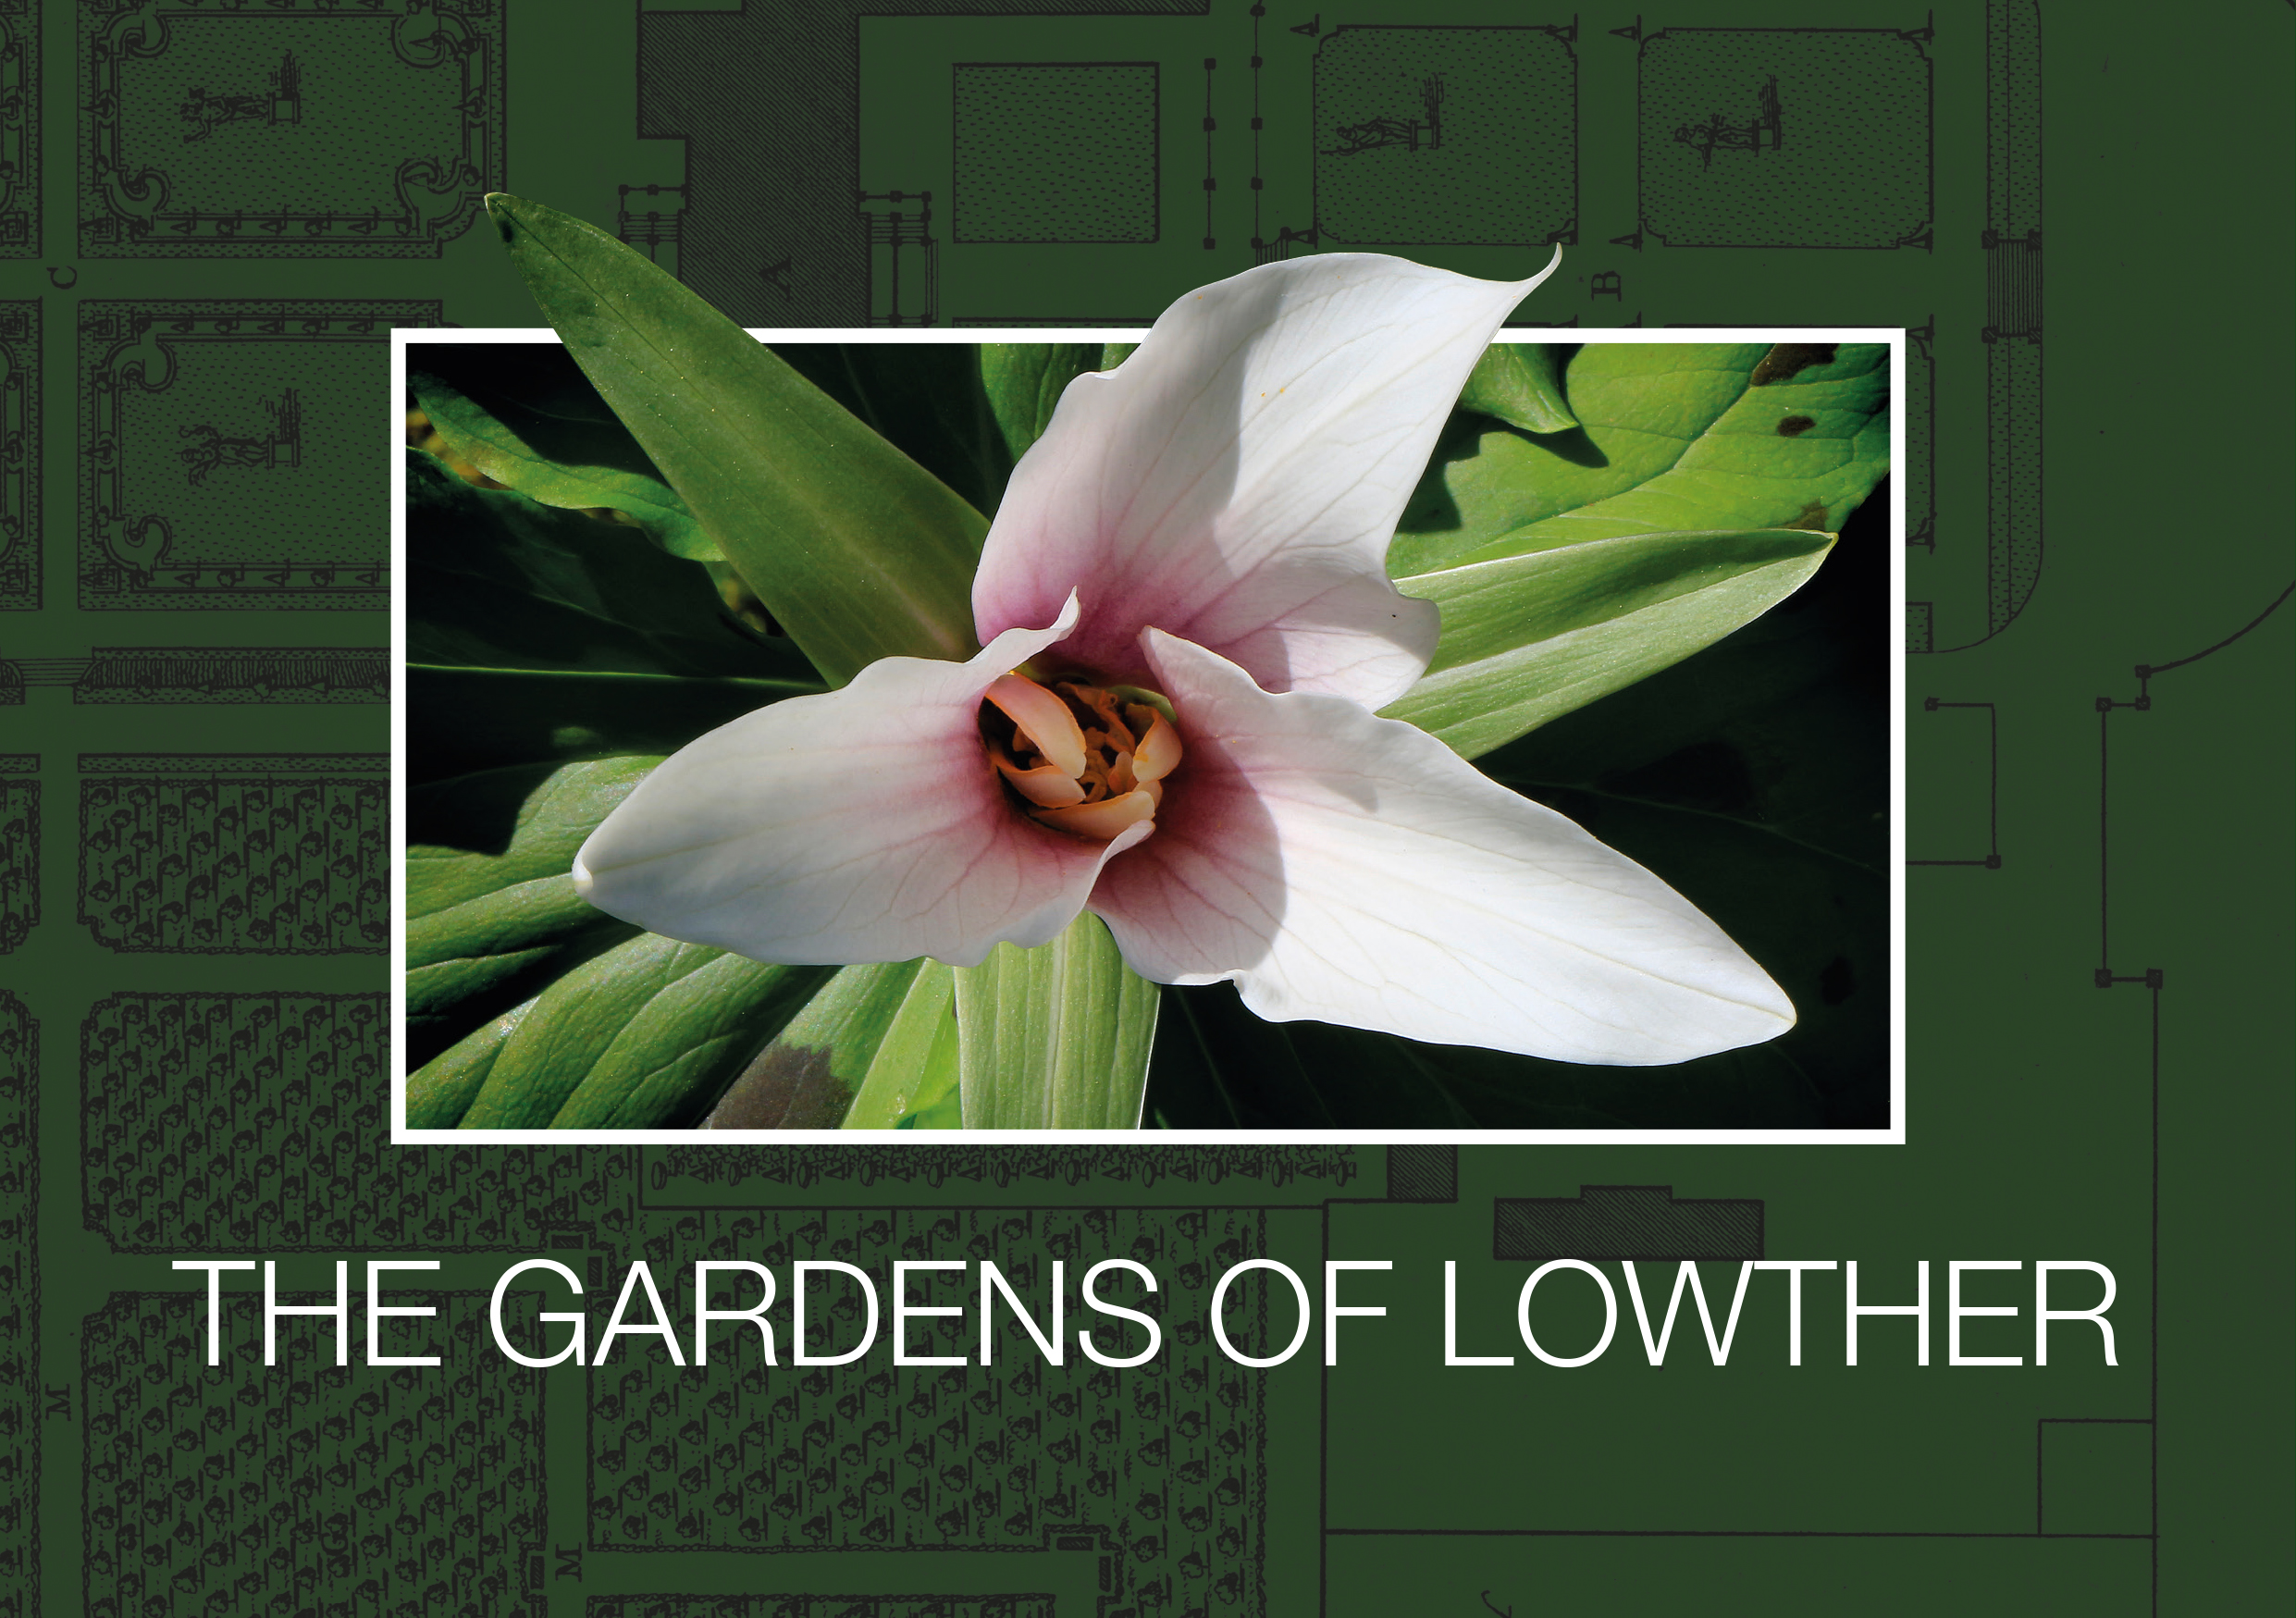 The Gardens of Lowther